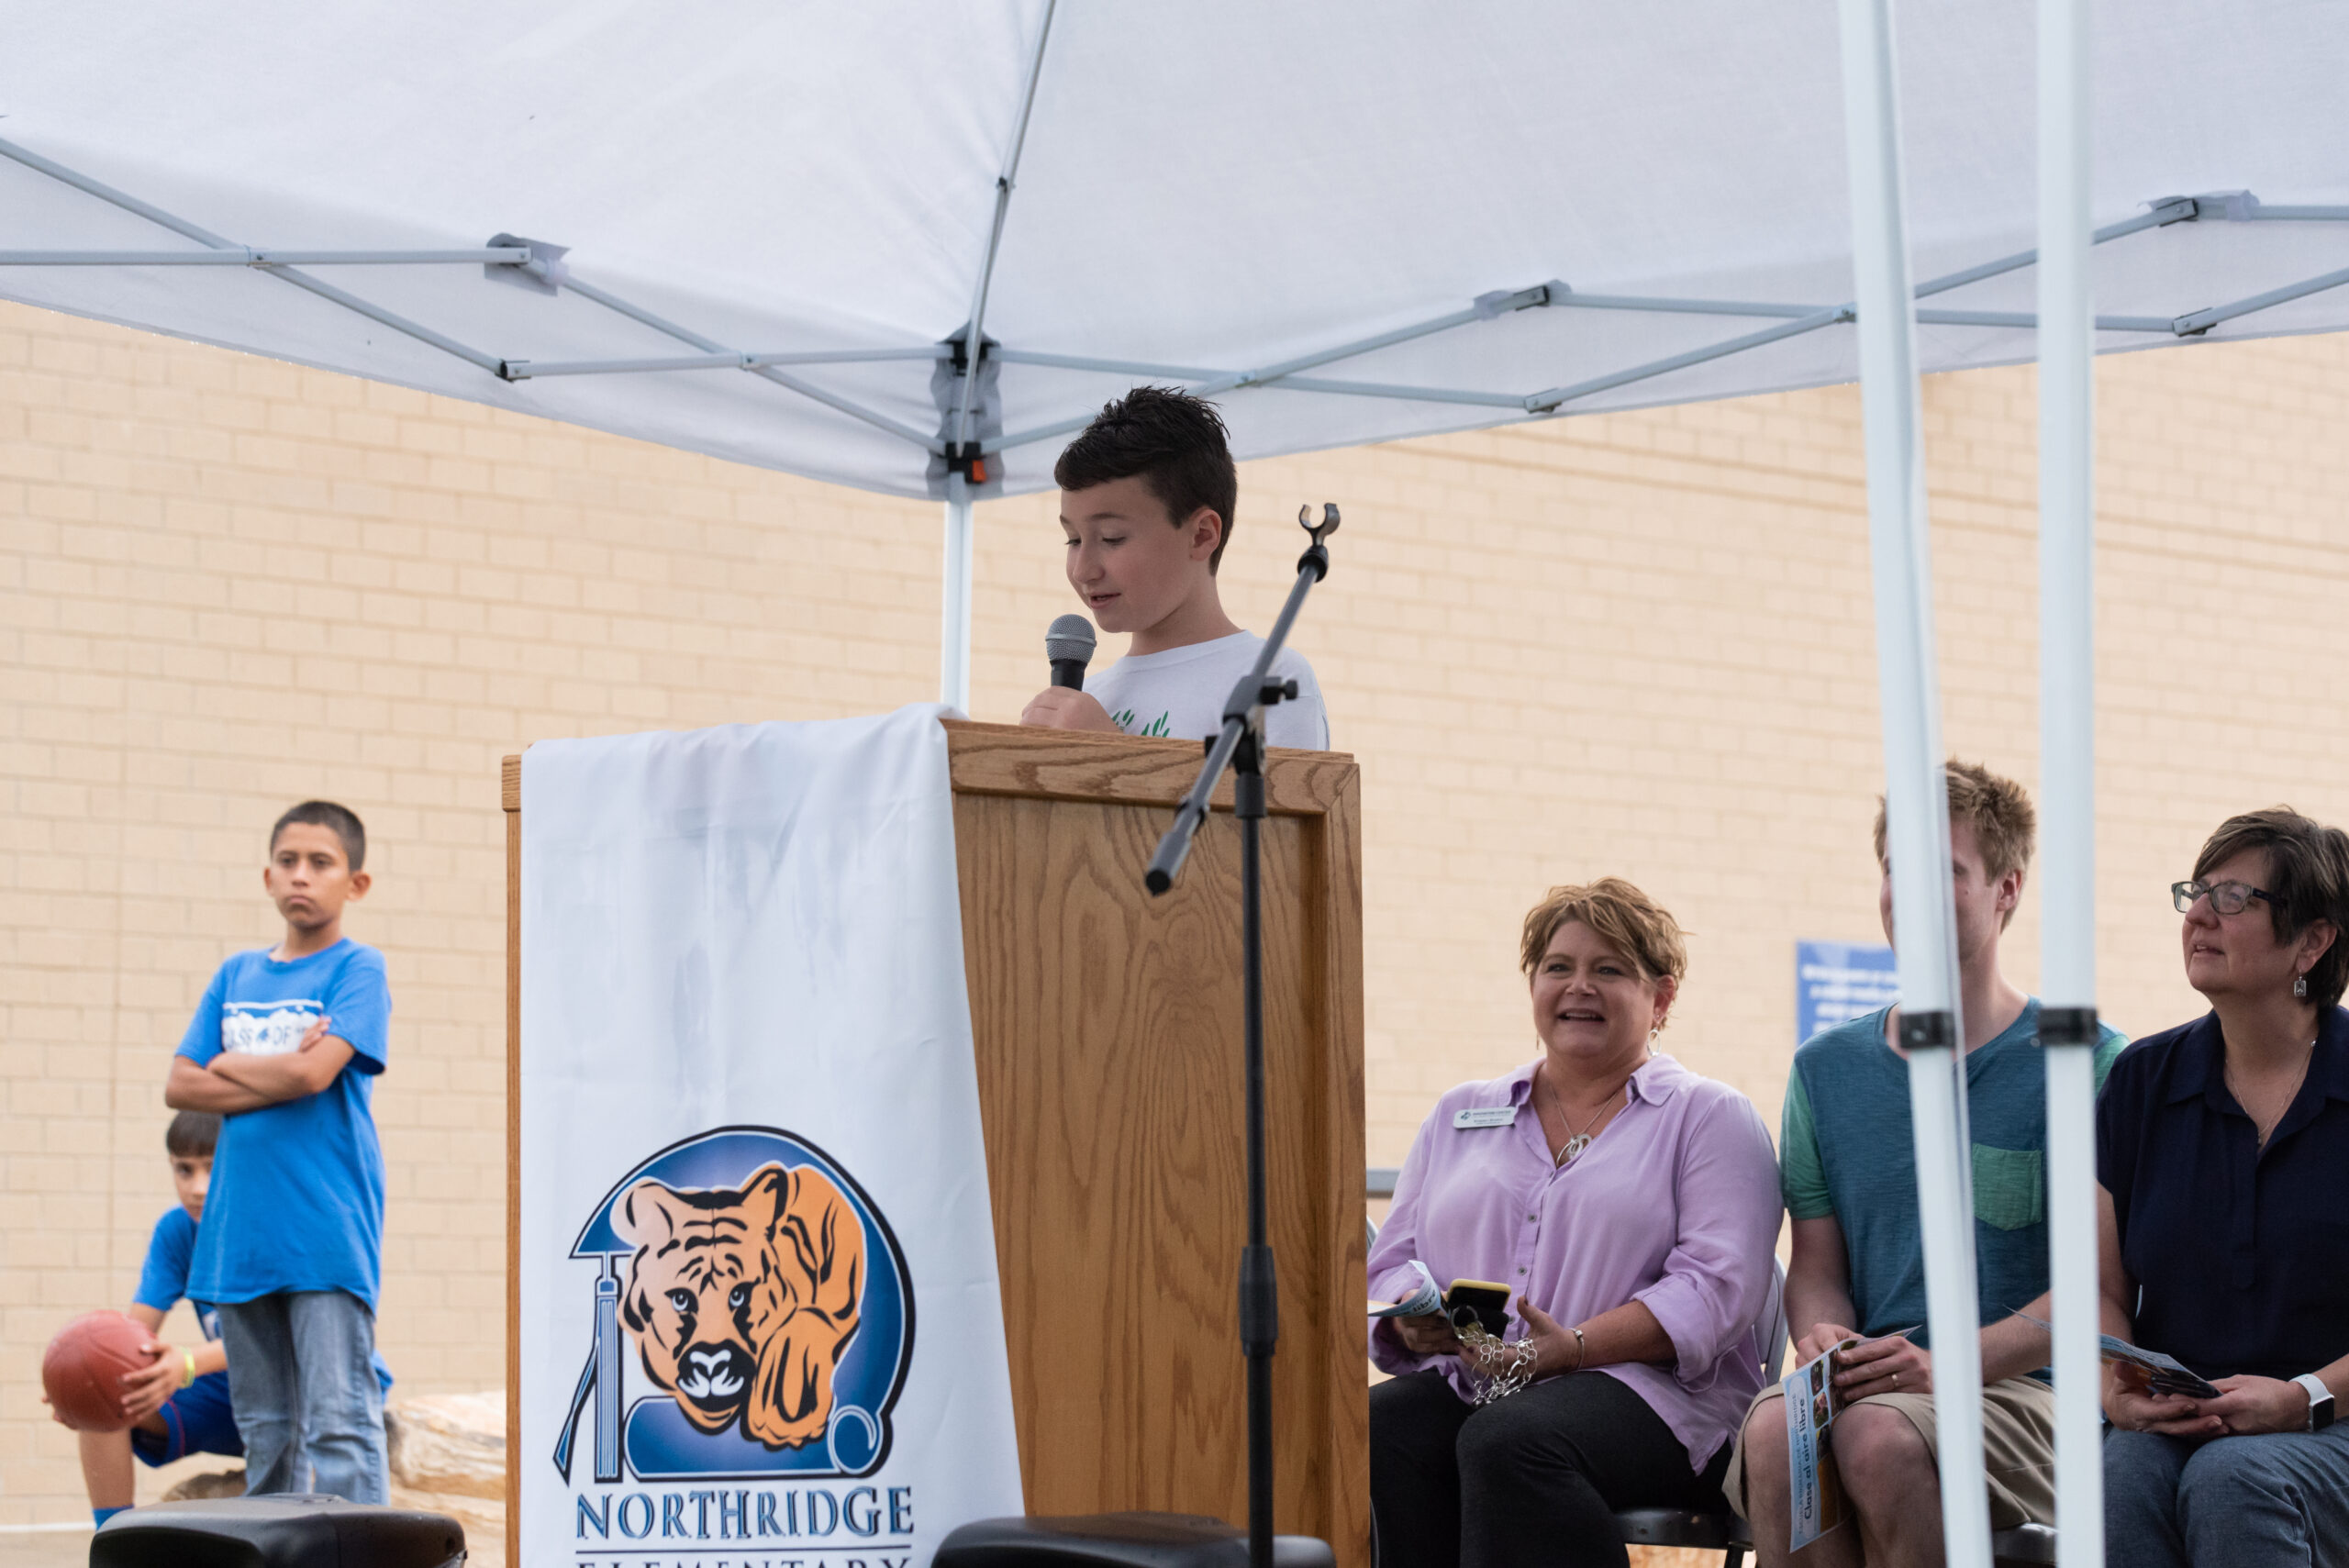 An elementary aged student speaking at a podium to open the new outdoor learning space.